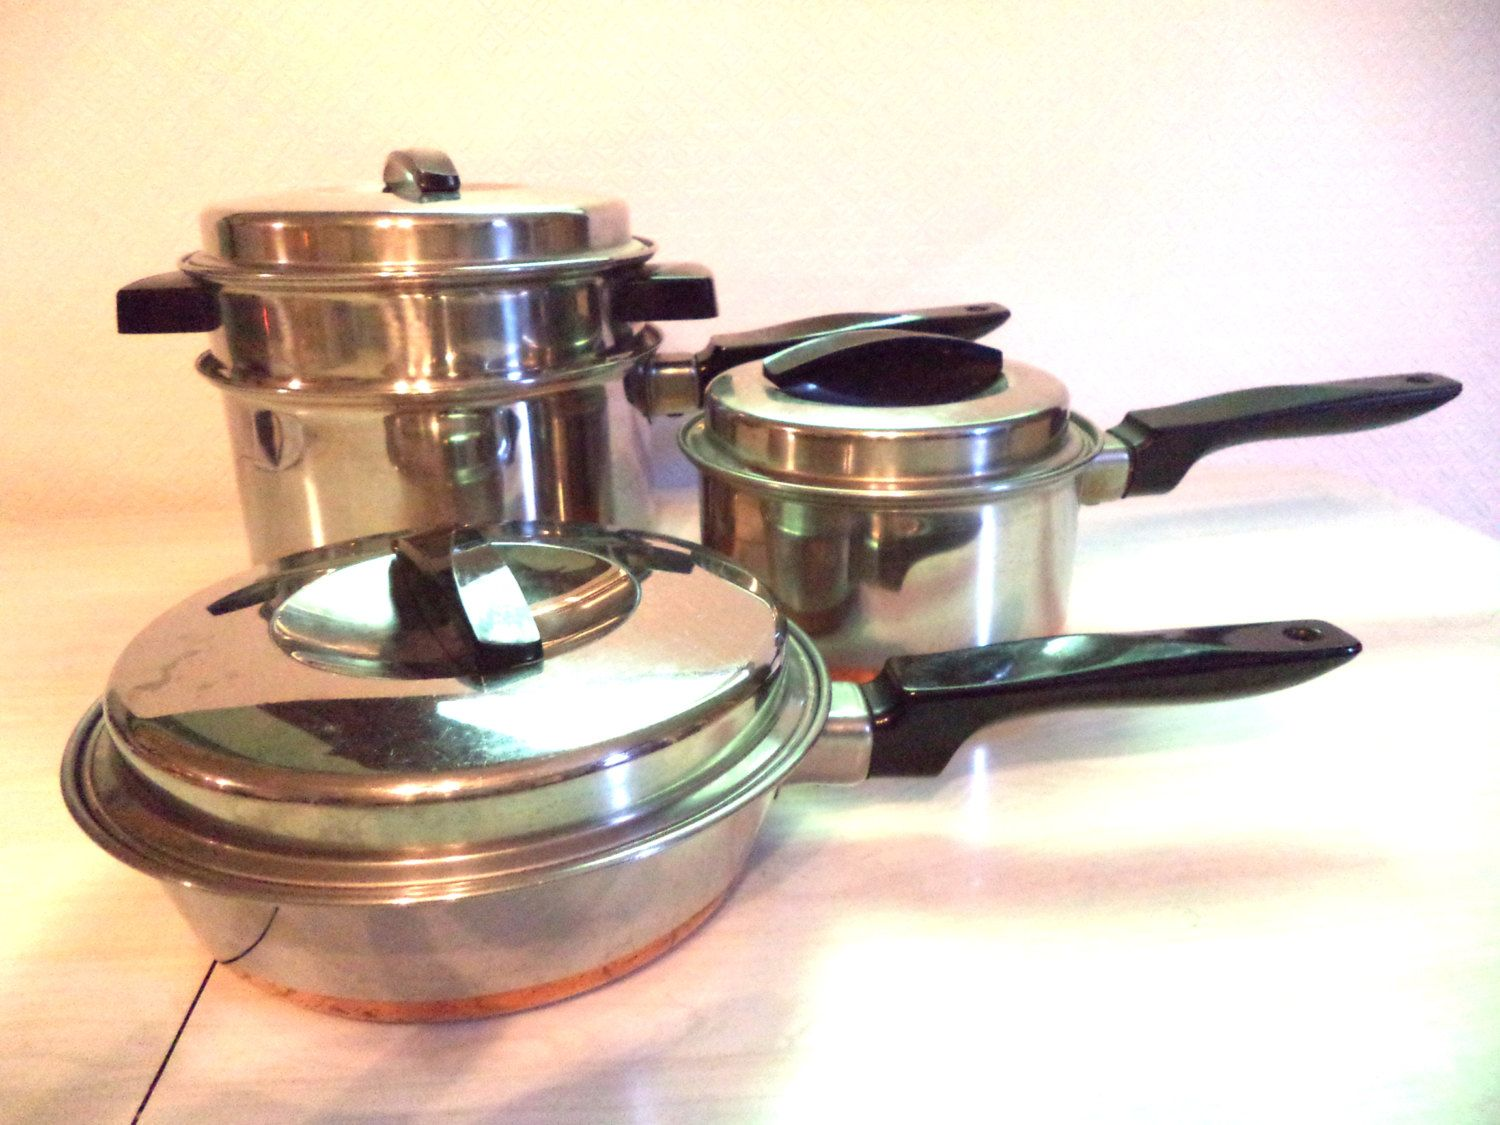 vintage copper bottomed pots ekcoware ekco  piece set saucepan  - vintage copper bottomed pots ekcoware ekco  piece set saucepan skilletdouble boiler stainless steel cookware